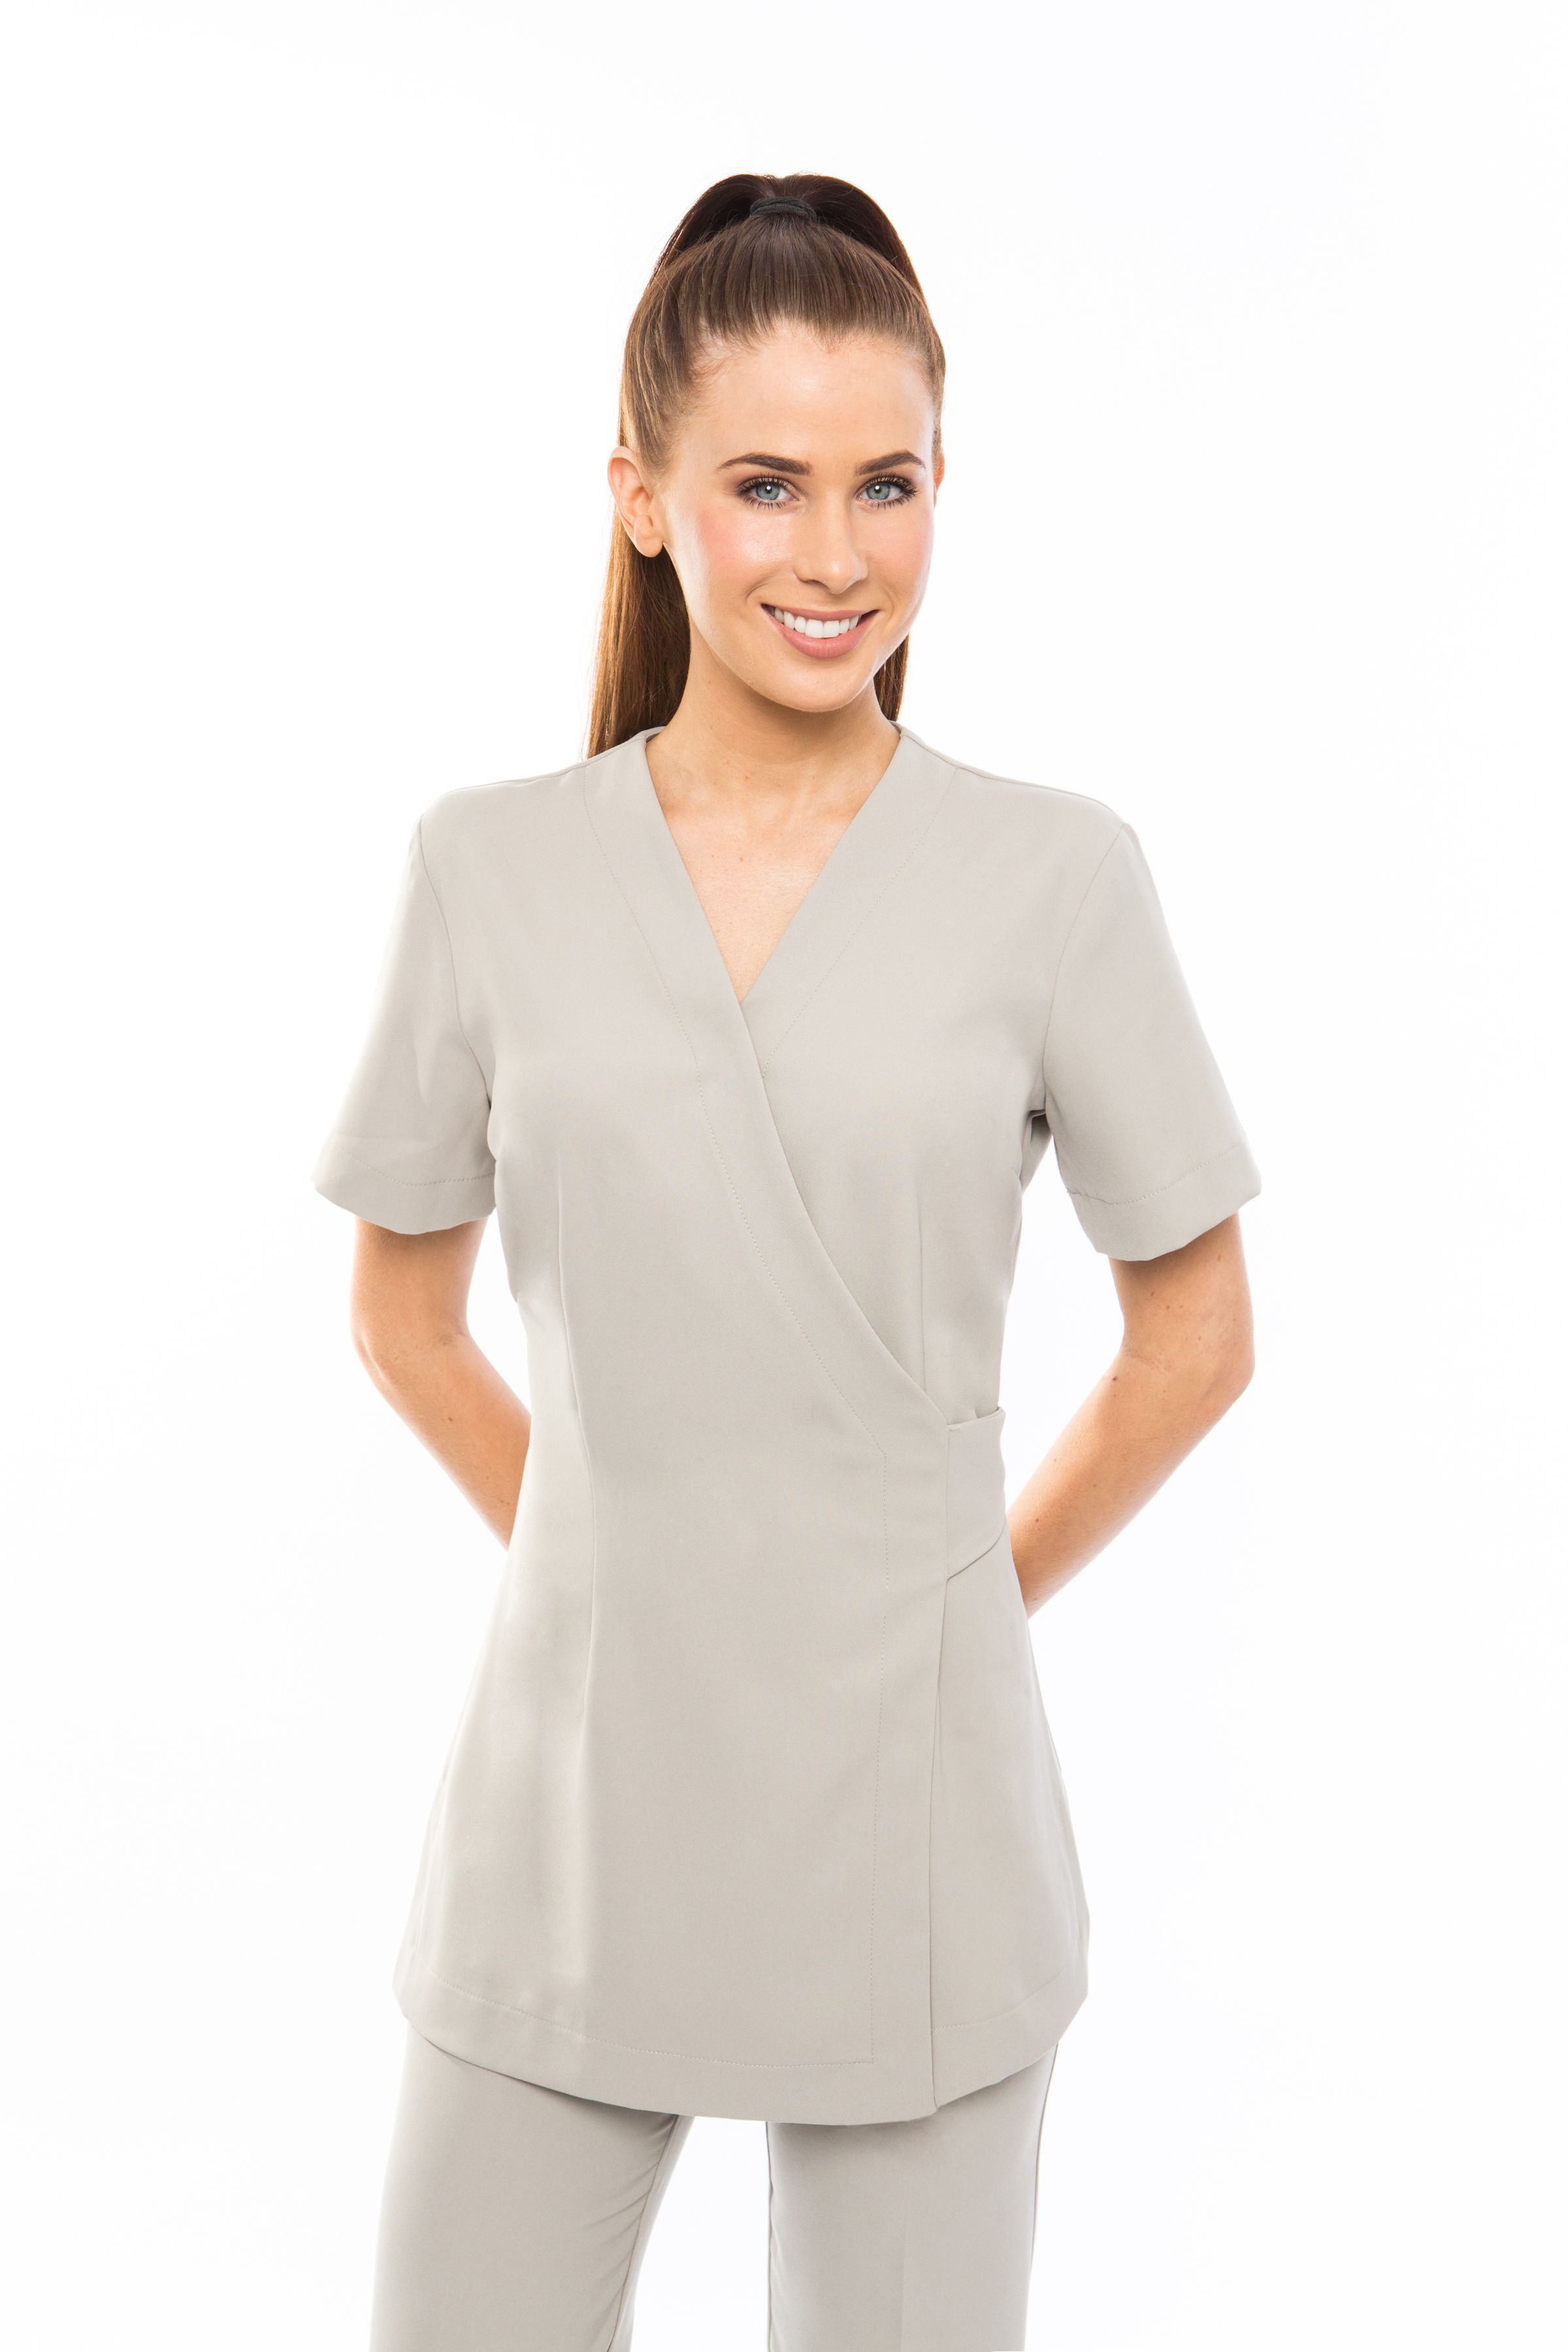 Spa 12 wrap work tunic glow acupuncture and esthetics for Spa uniform photos